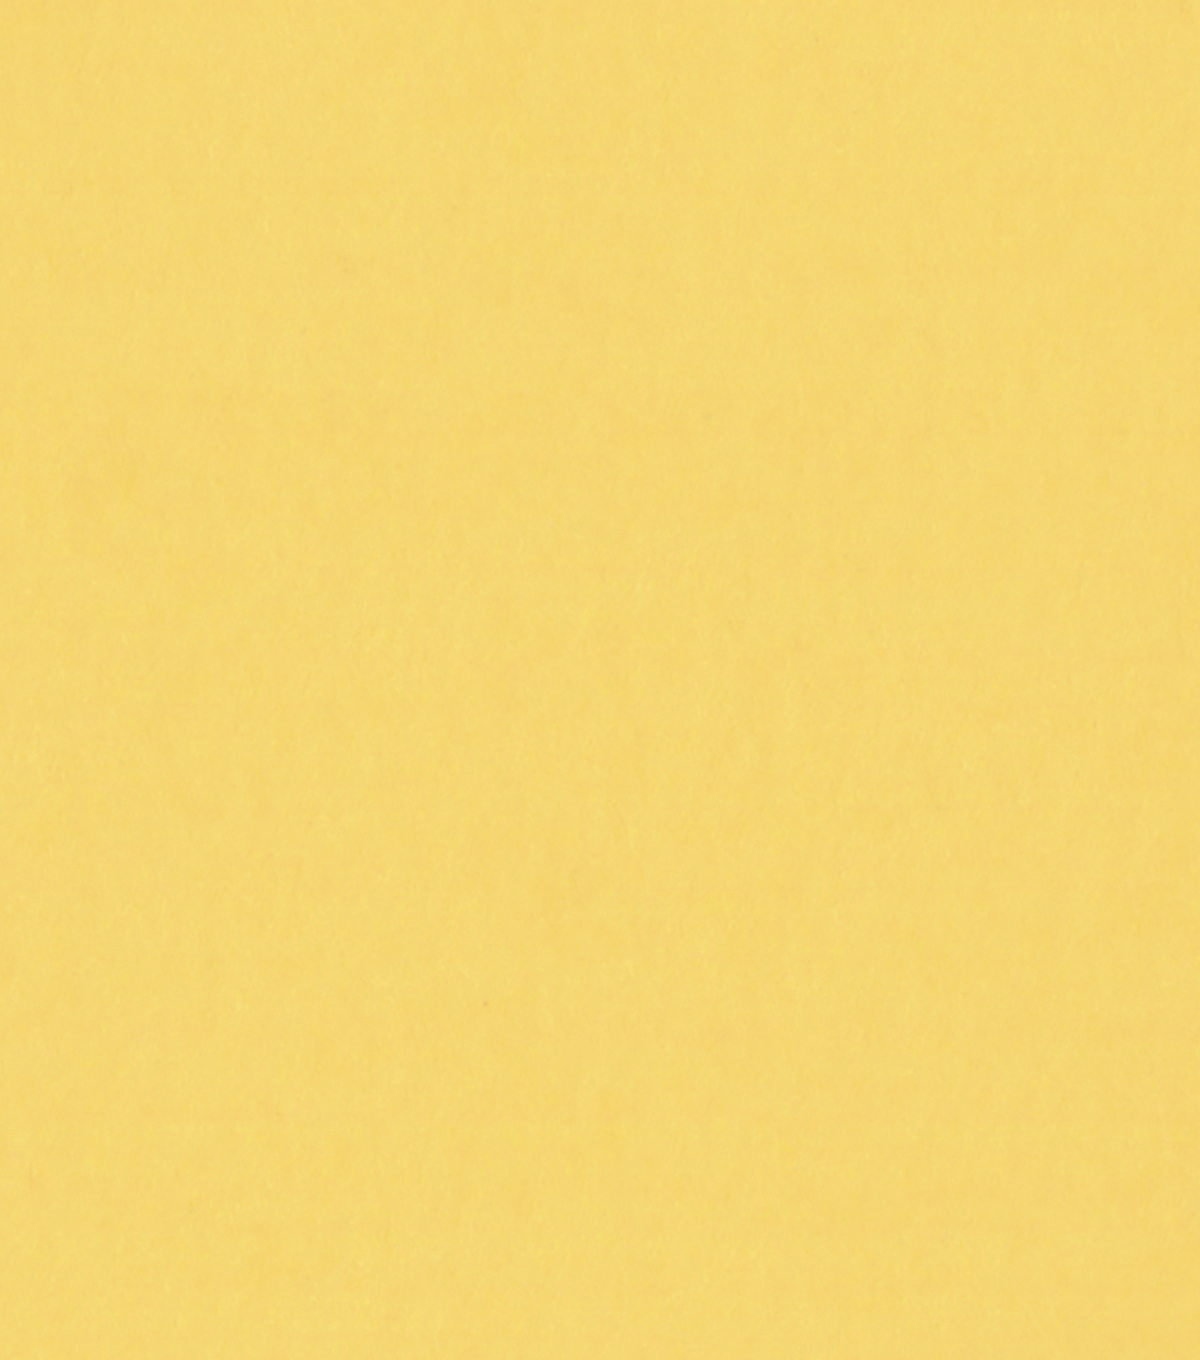 Bazzill Card Shoppe Heavyweight Cardstock Paper 12\u0027\u0027 x 12\u0027\u0027, Sour Lemon